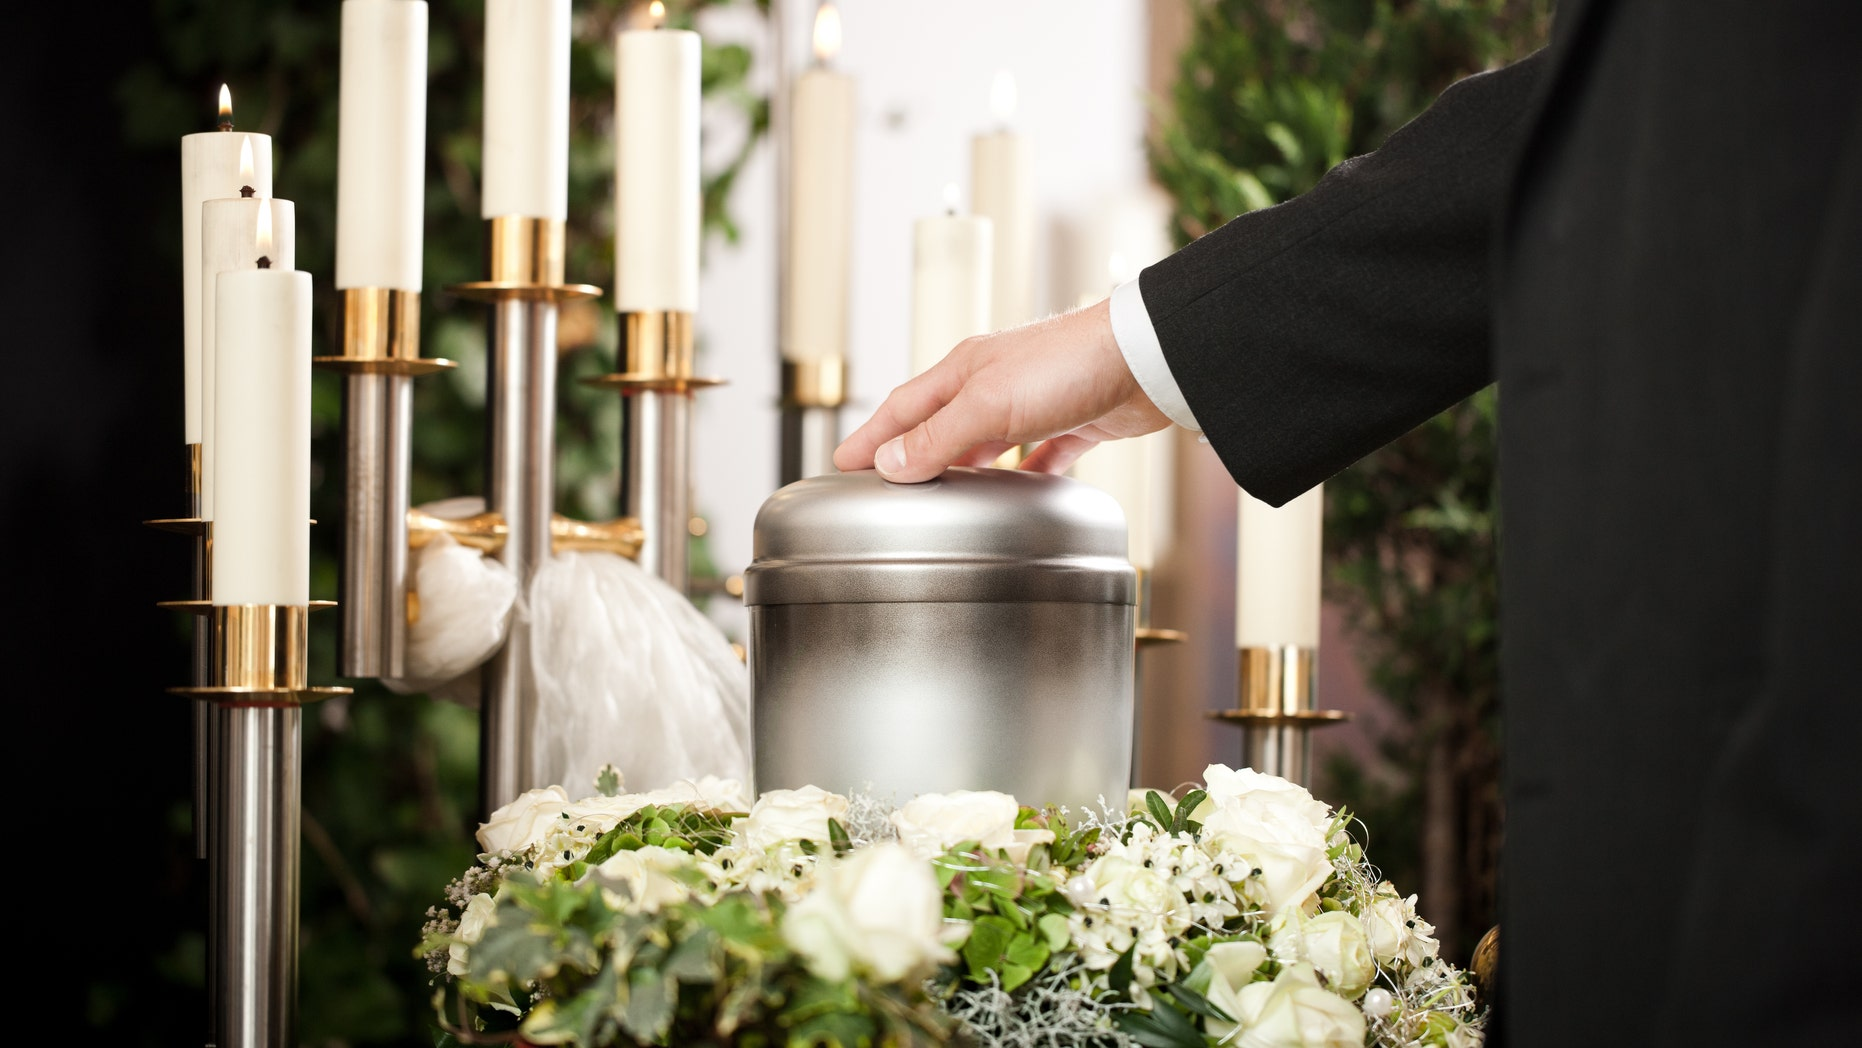 The cremation, which occurred without the knowledge of the doctors who had injected the radioactive material into the man's body, posed a danger to crematory workers.